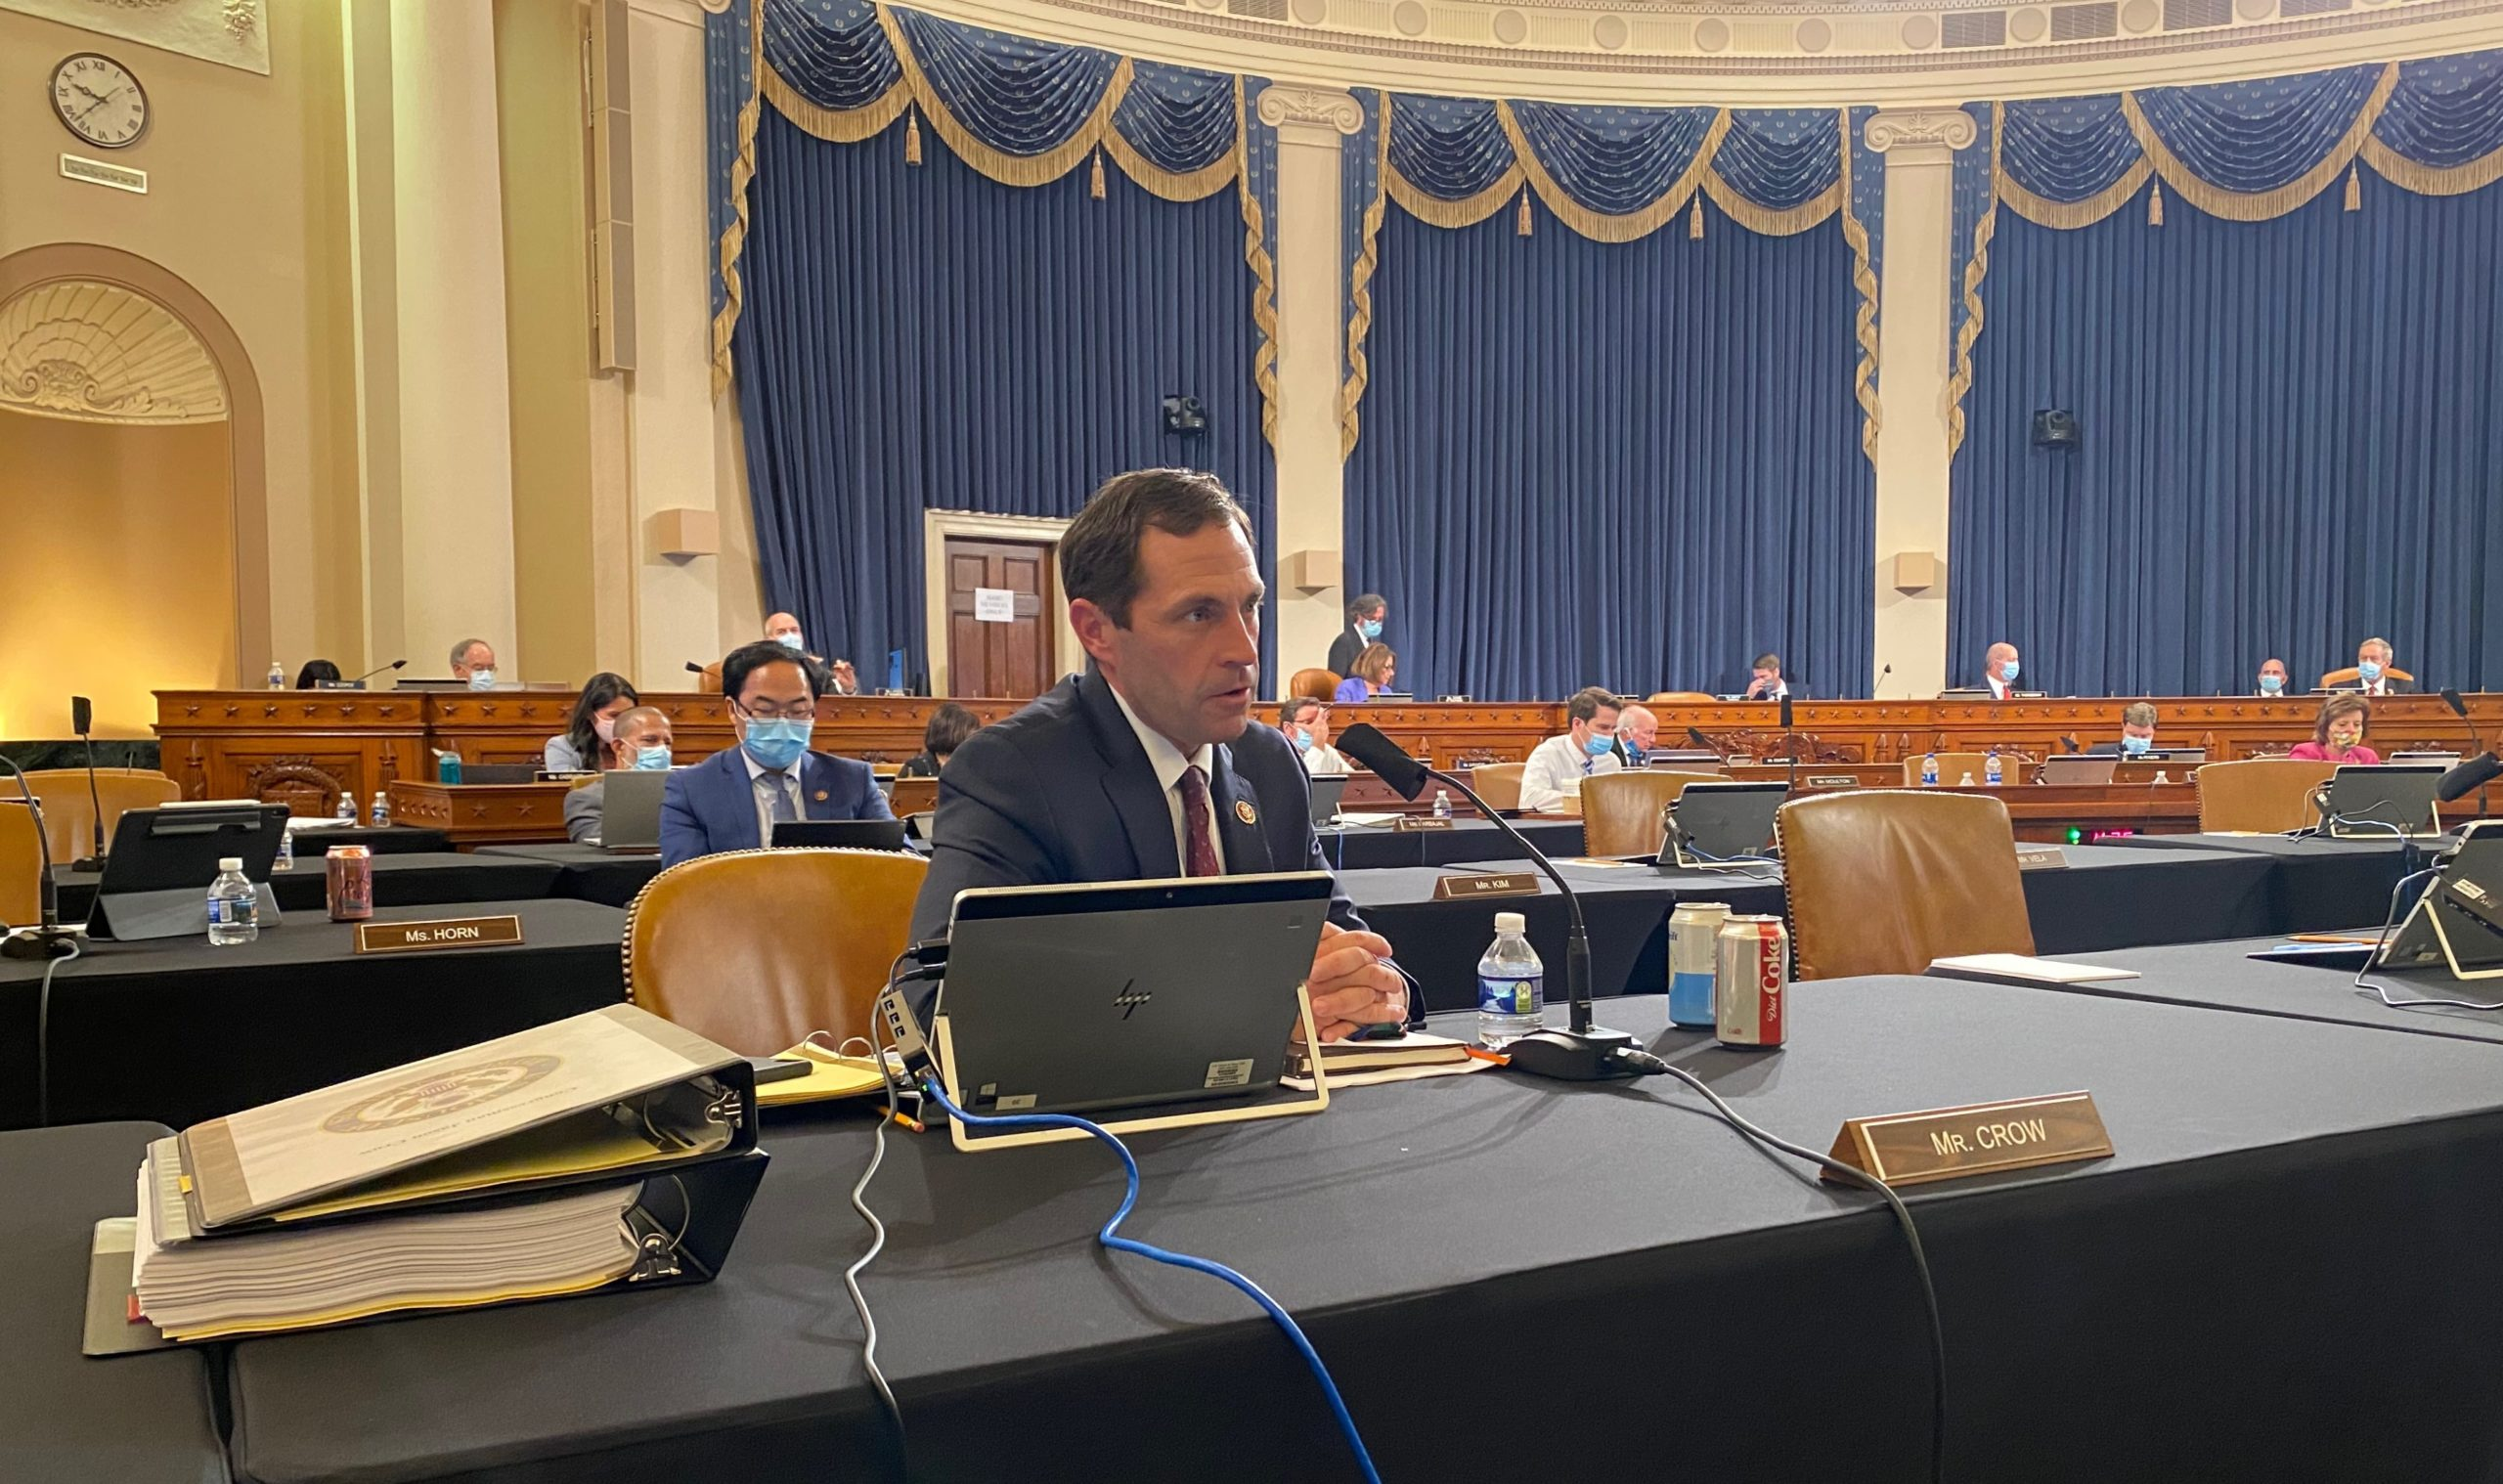 Rep. Jason Crow speaks at the House Armed Service Committee hearing on the NDAA.